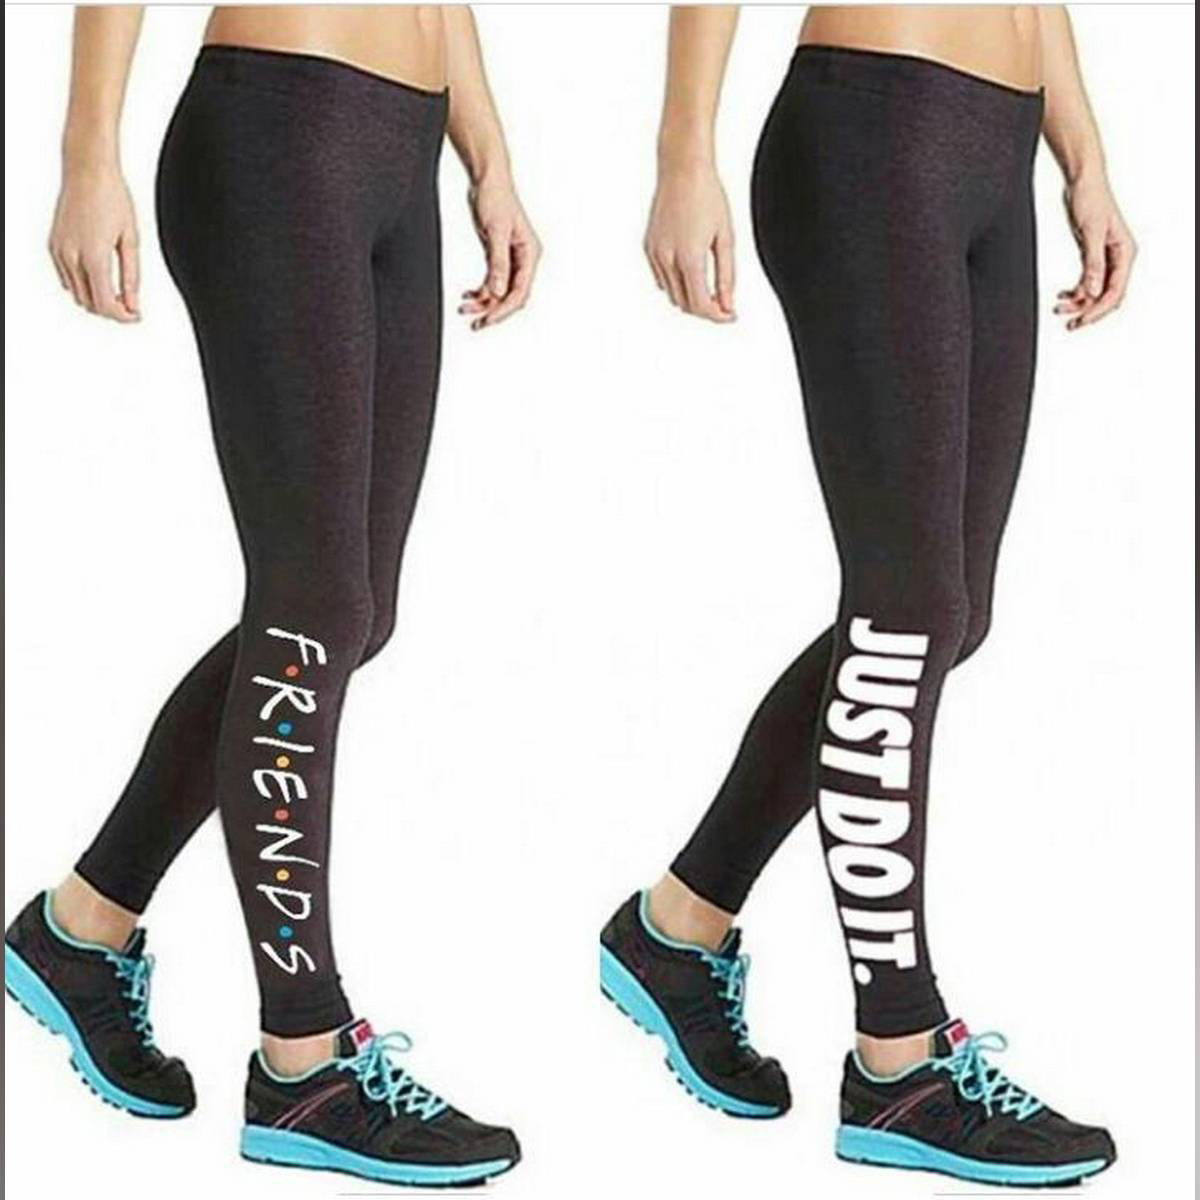 Pack Of 2 Black High Waist Stretchable Lycra  Printed Gym Tights For Women